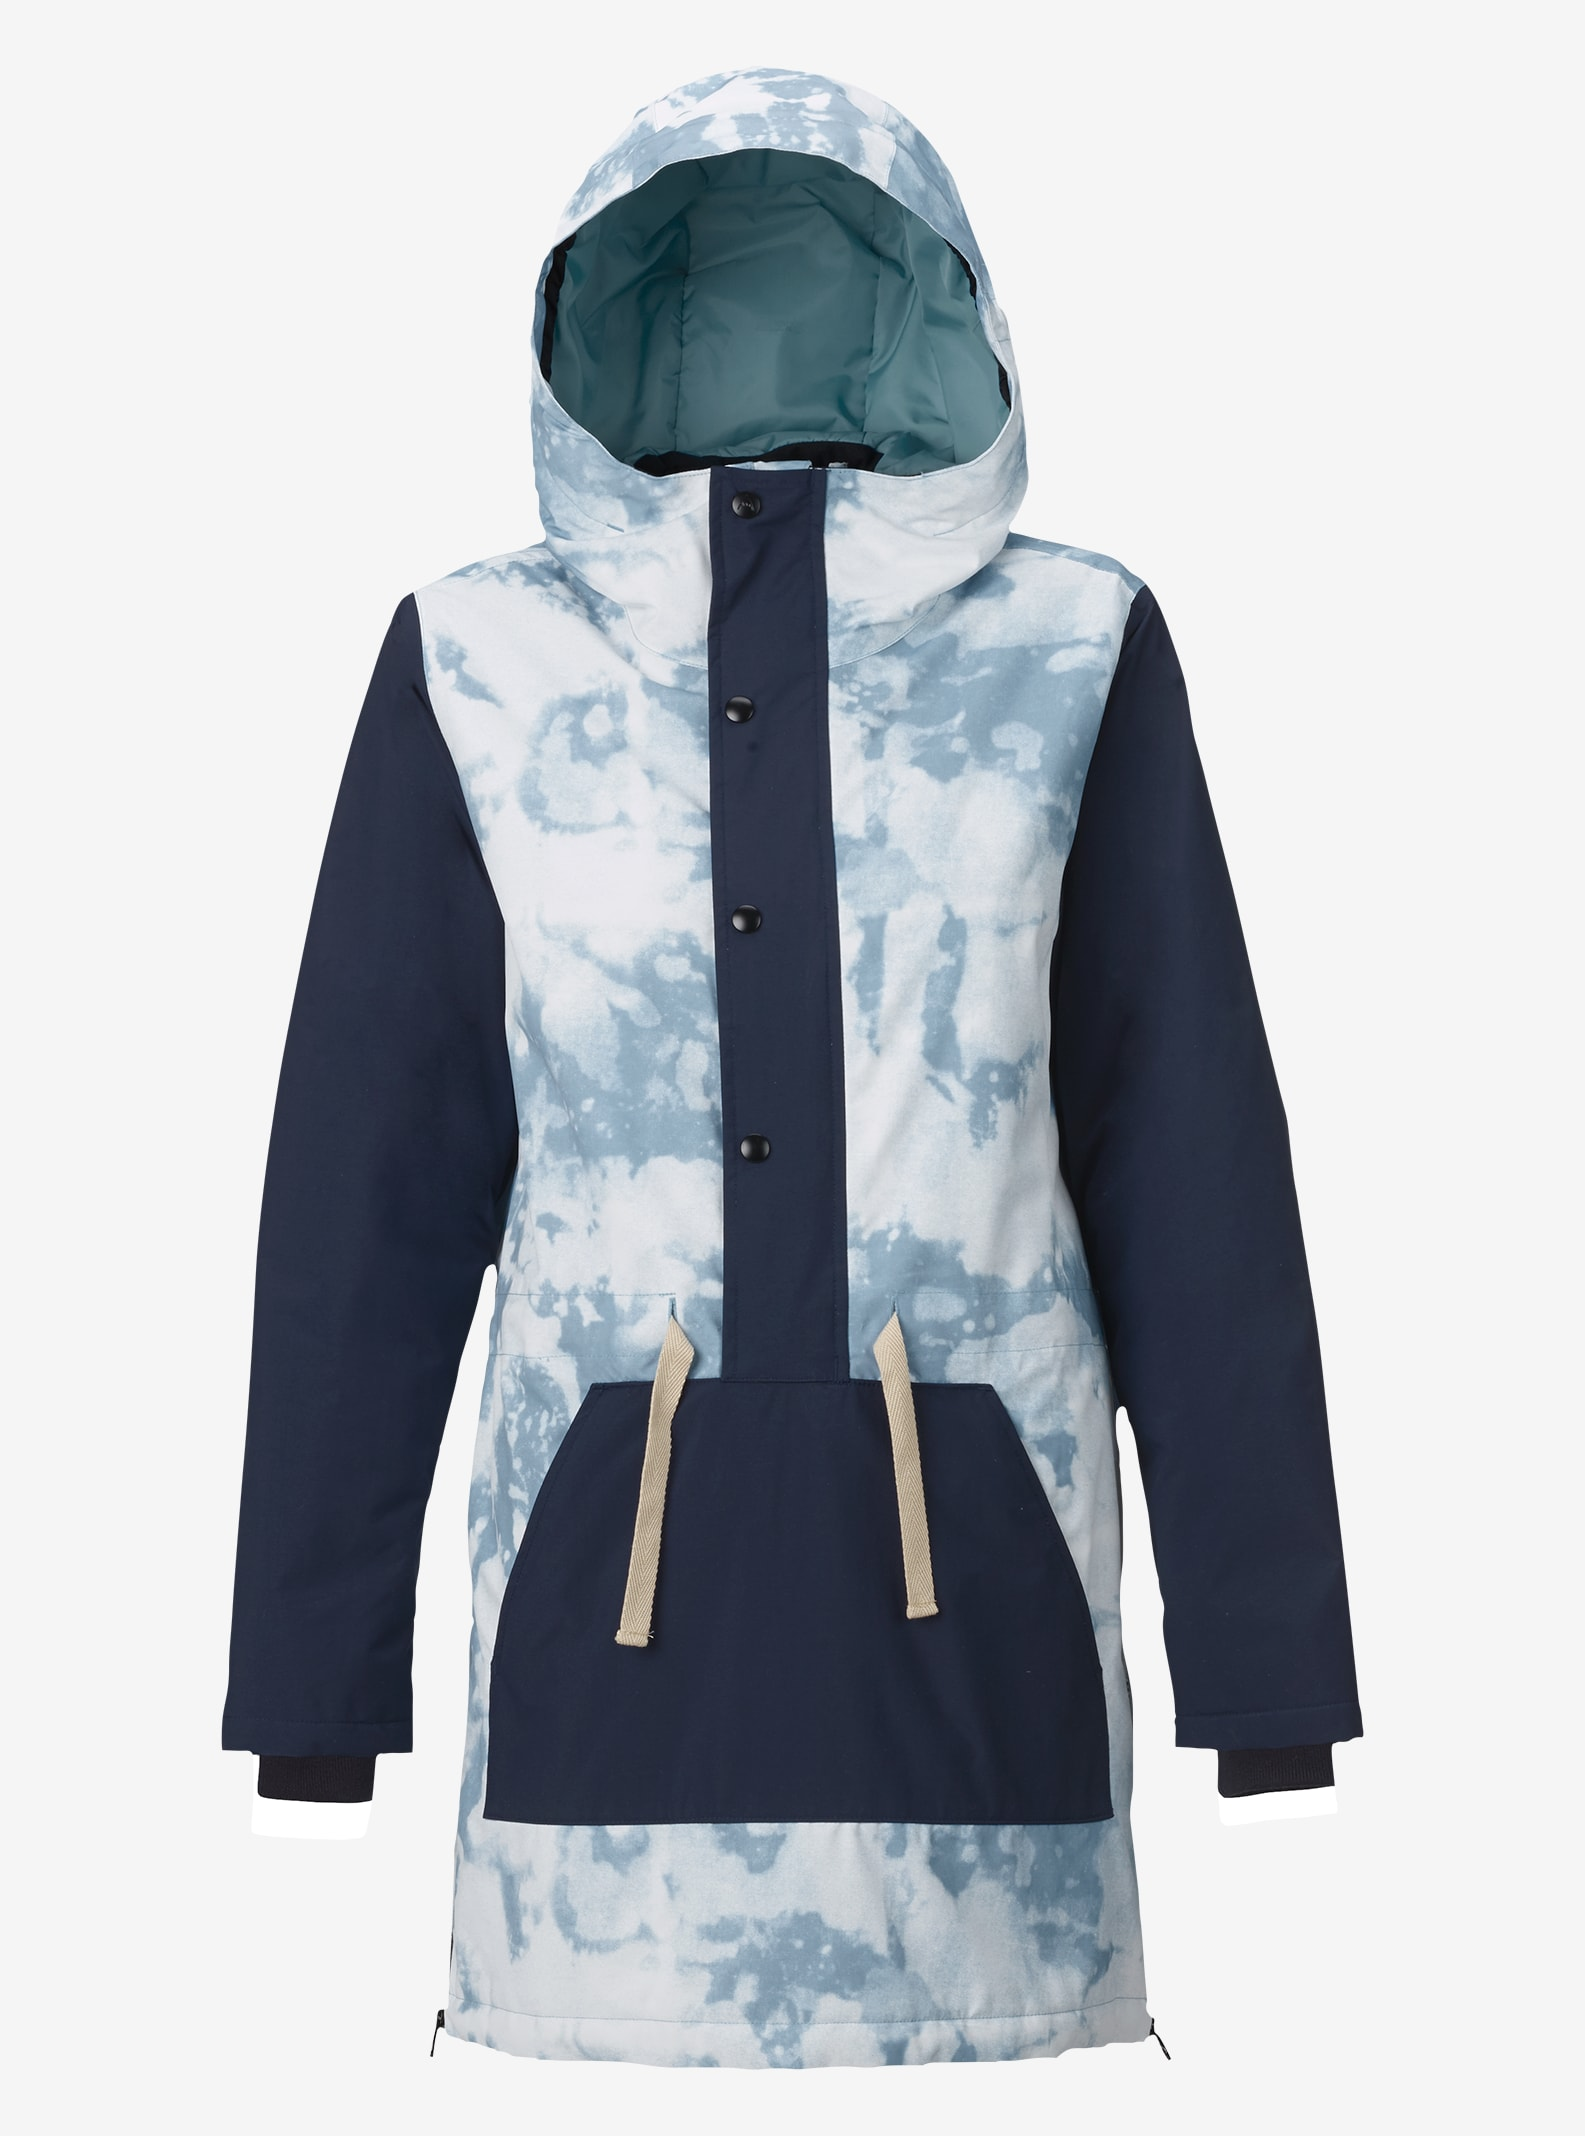 Women's Burton Chuteout Anorak Jacket shown in Bleached / Mood Indigo